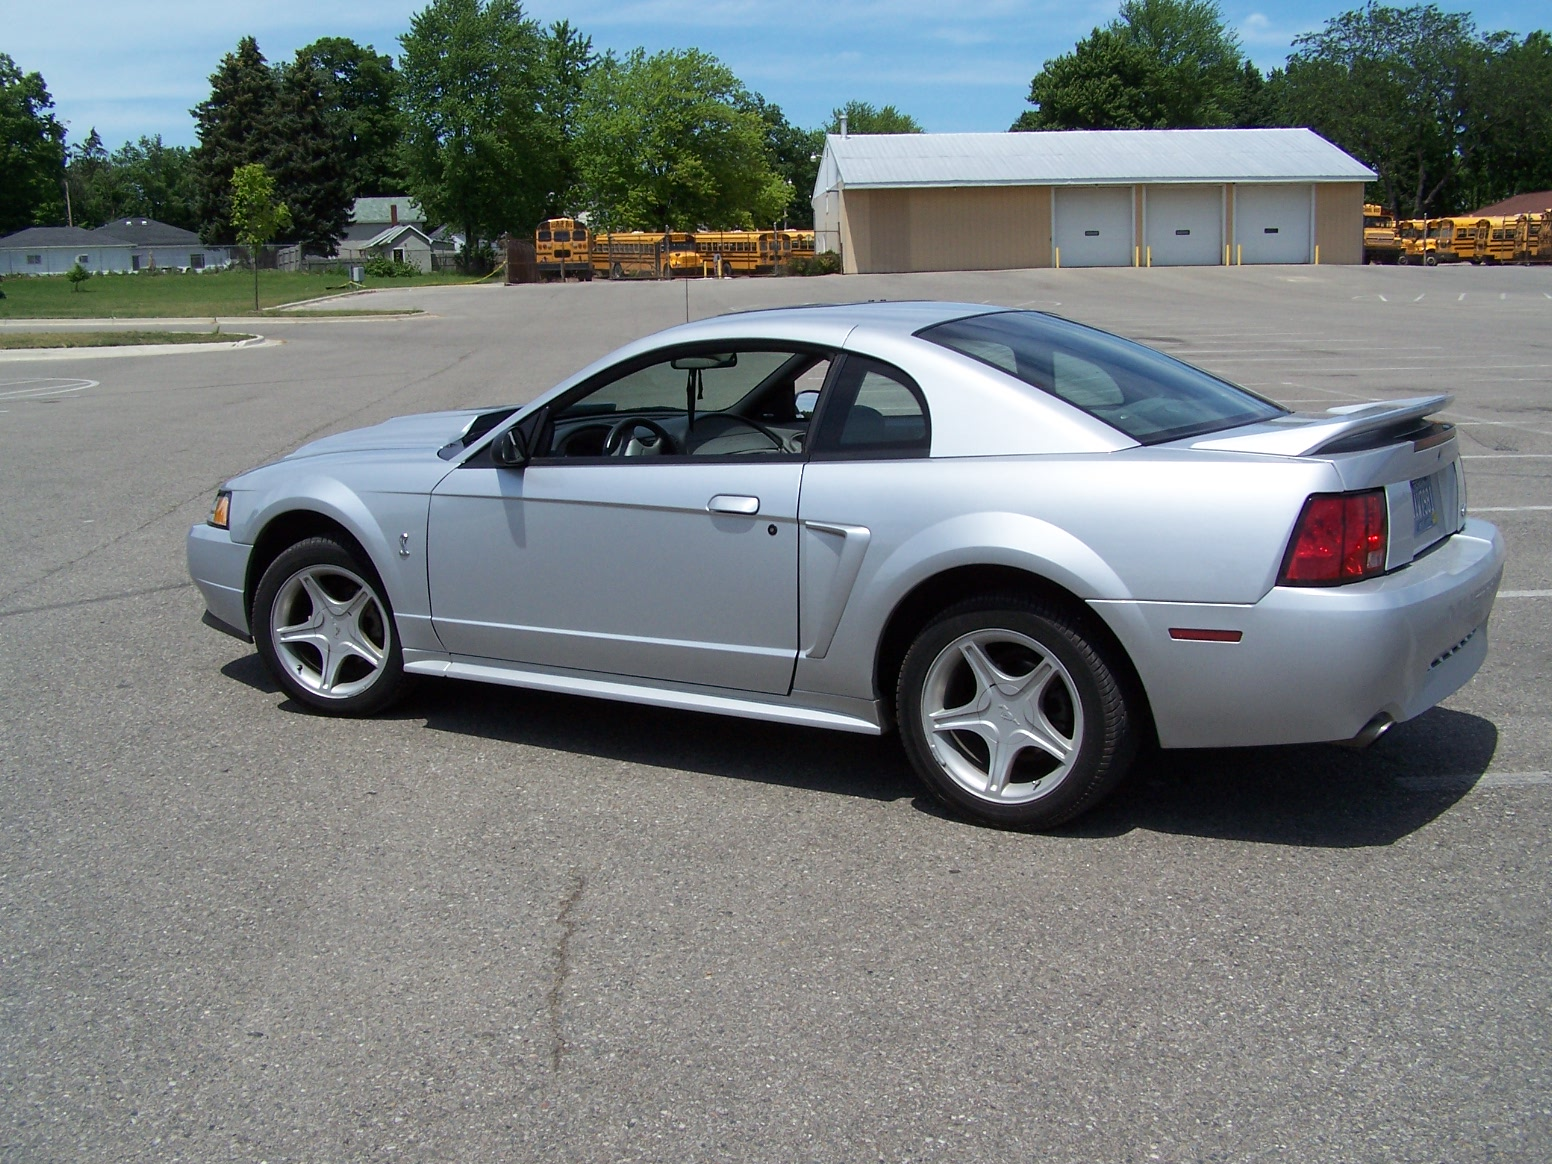 2007 Red Mustang >> 2000 Mustang GT for sale - Mustang Evolution